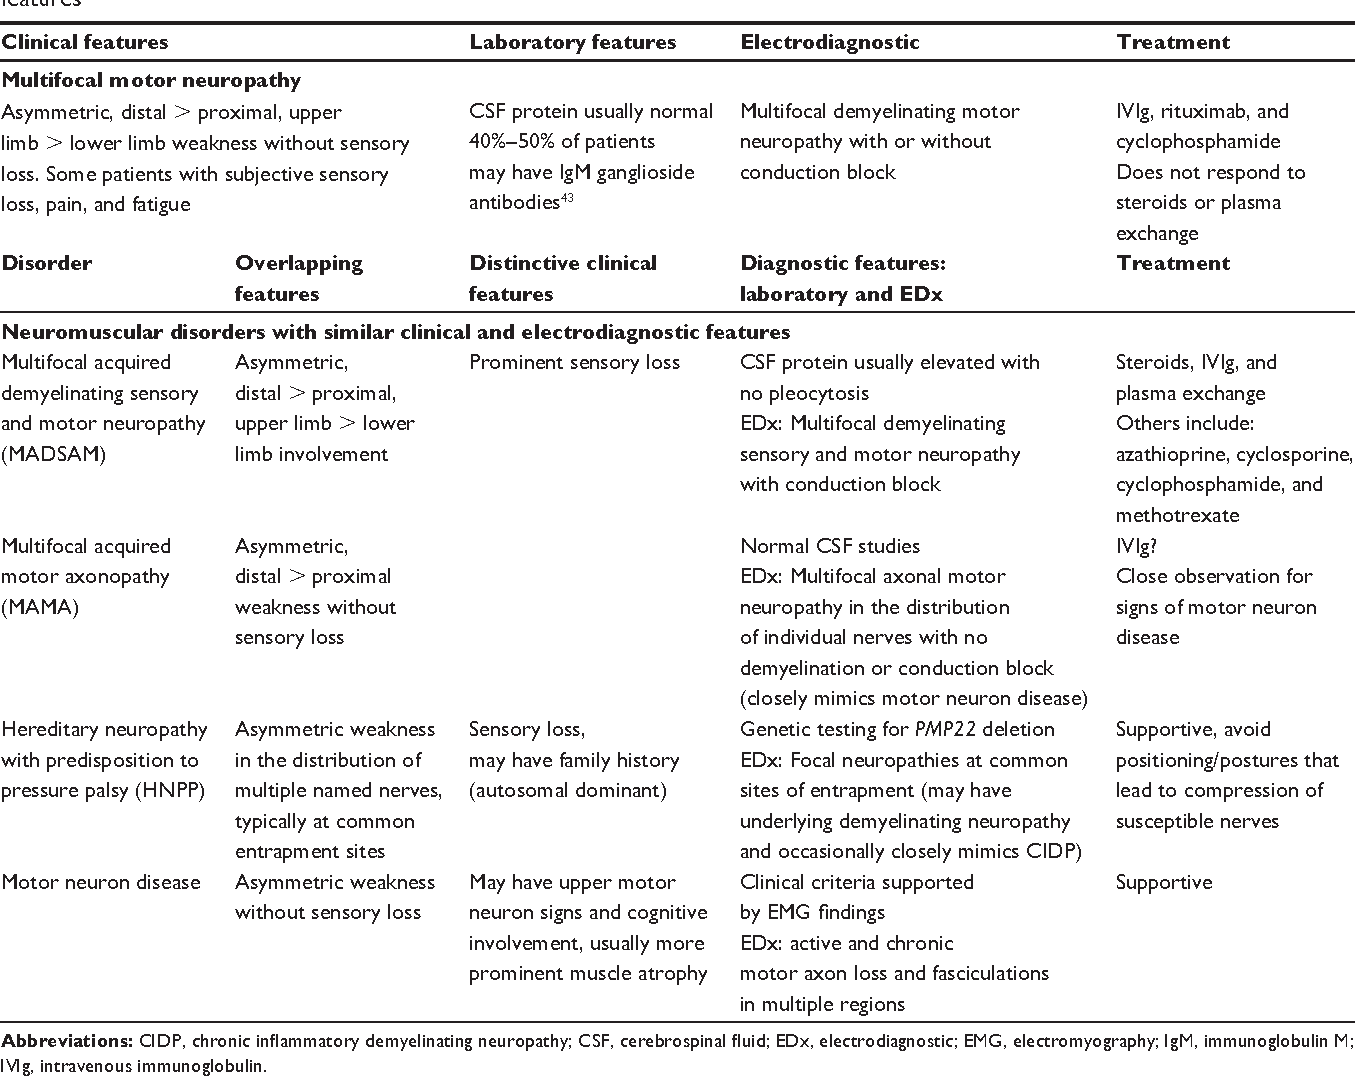 Table 2 Classic features of multifocal motor neuropathy and other neuromuscular disorders with similar clinical and